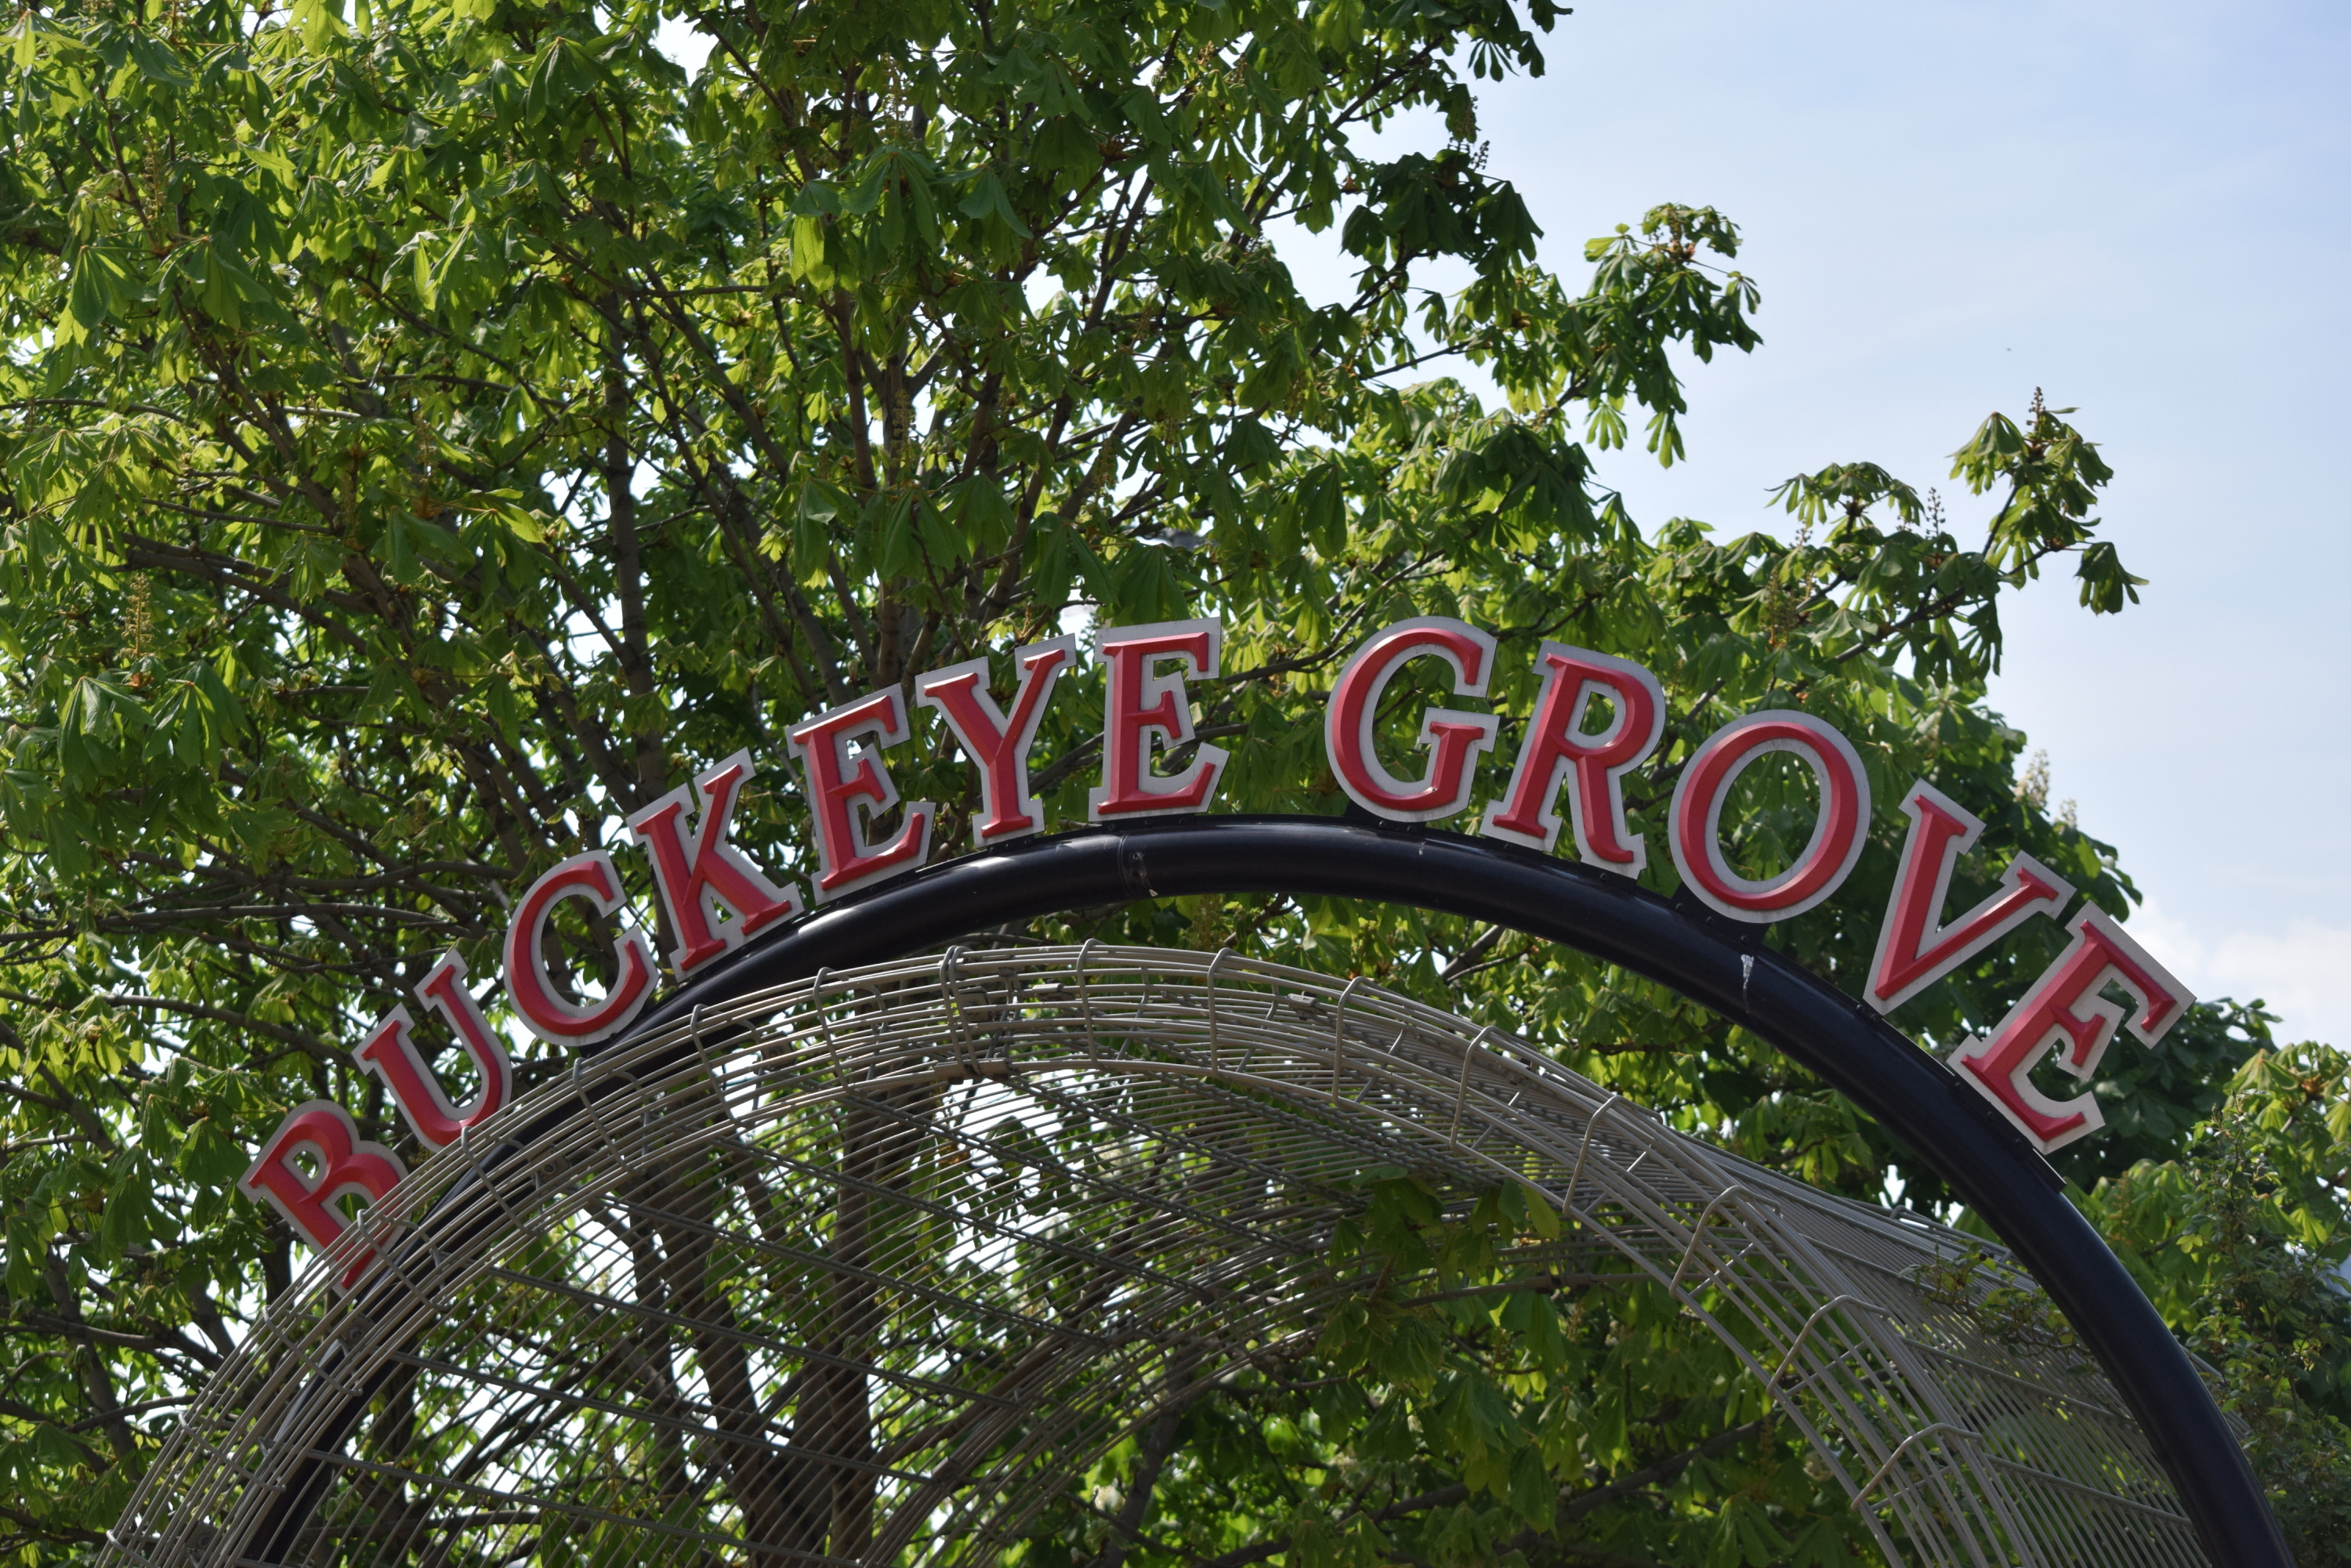 Buckeye Grove Landscaping Day